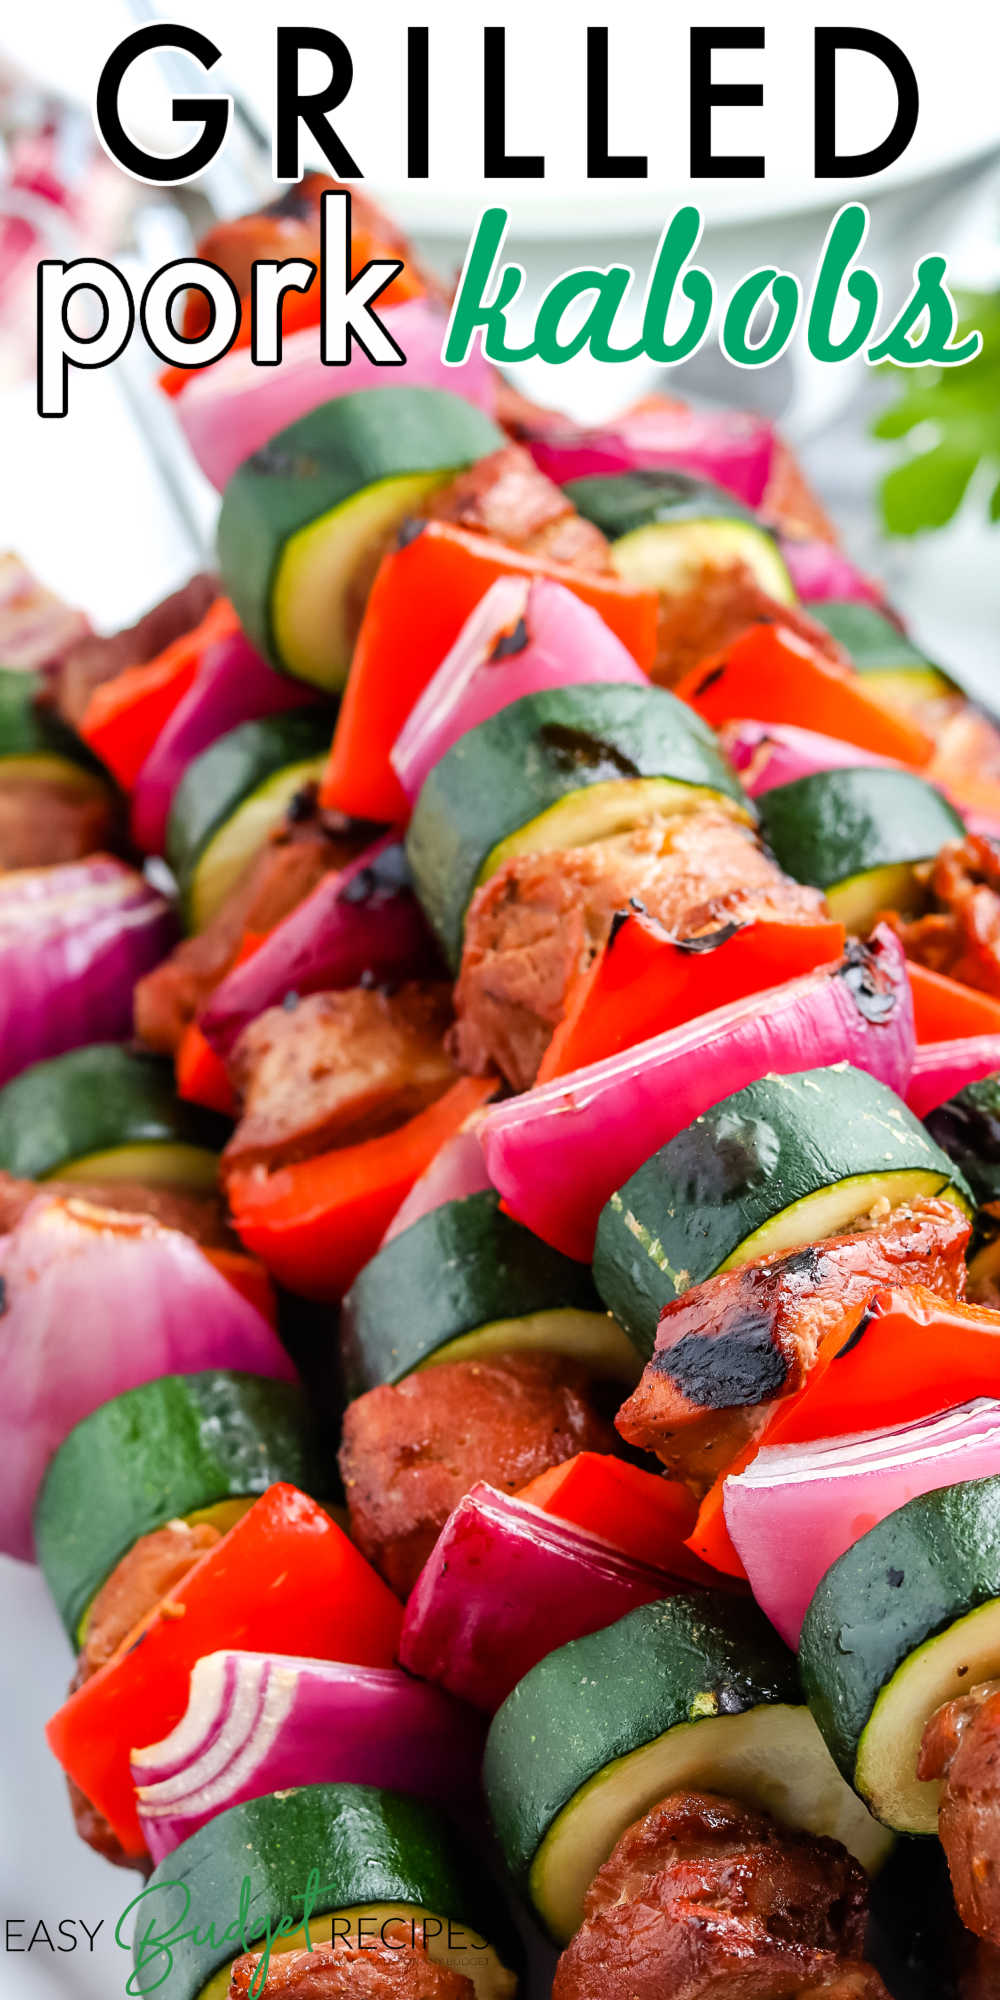 These Grilled Pork Kabobs are flavorful and easy to customize. The pork shish kabob marinade helps make them juicy and delectable. via @easybudgetrecipes